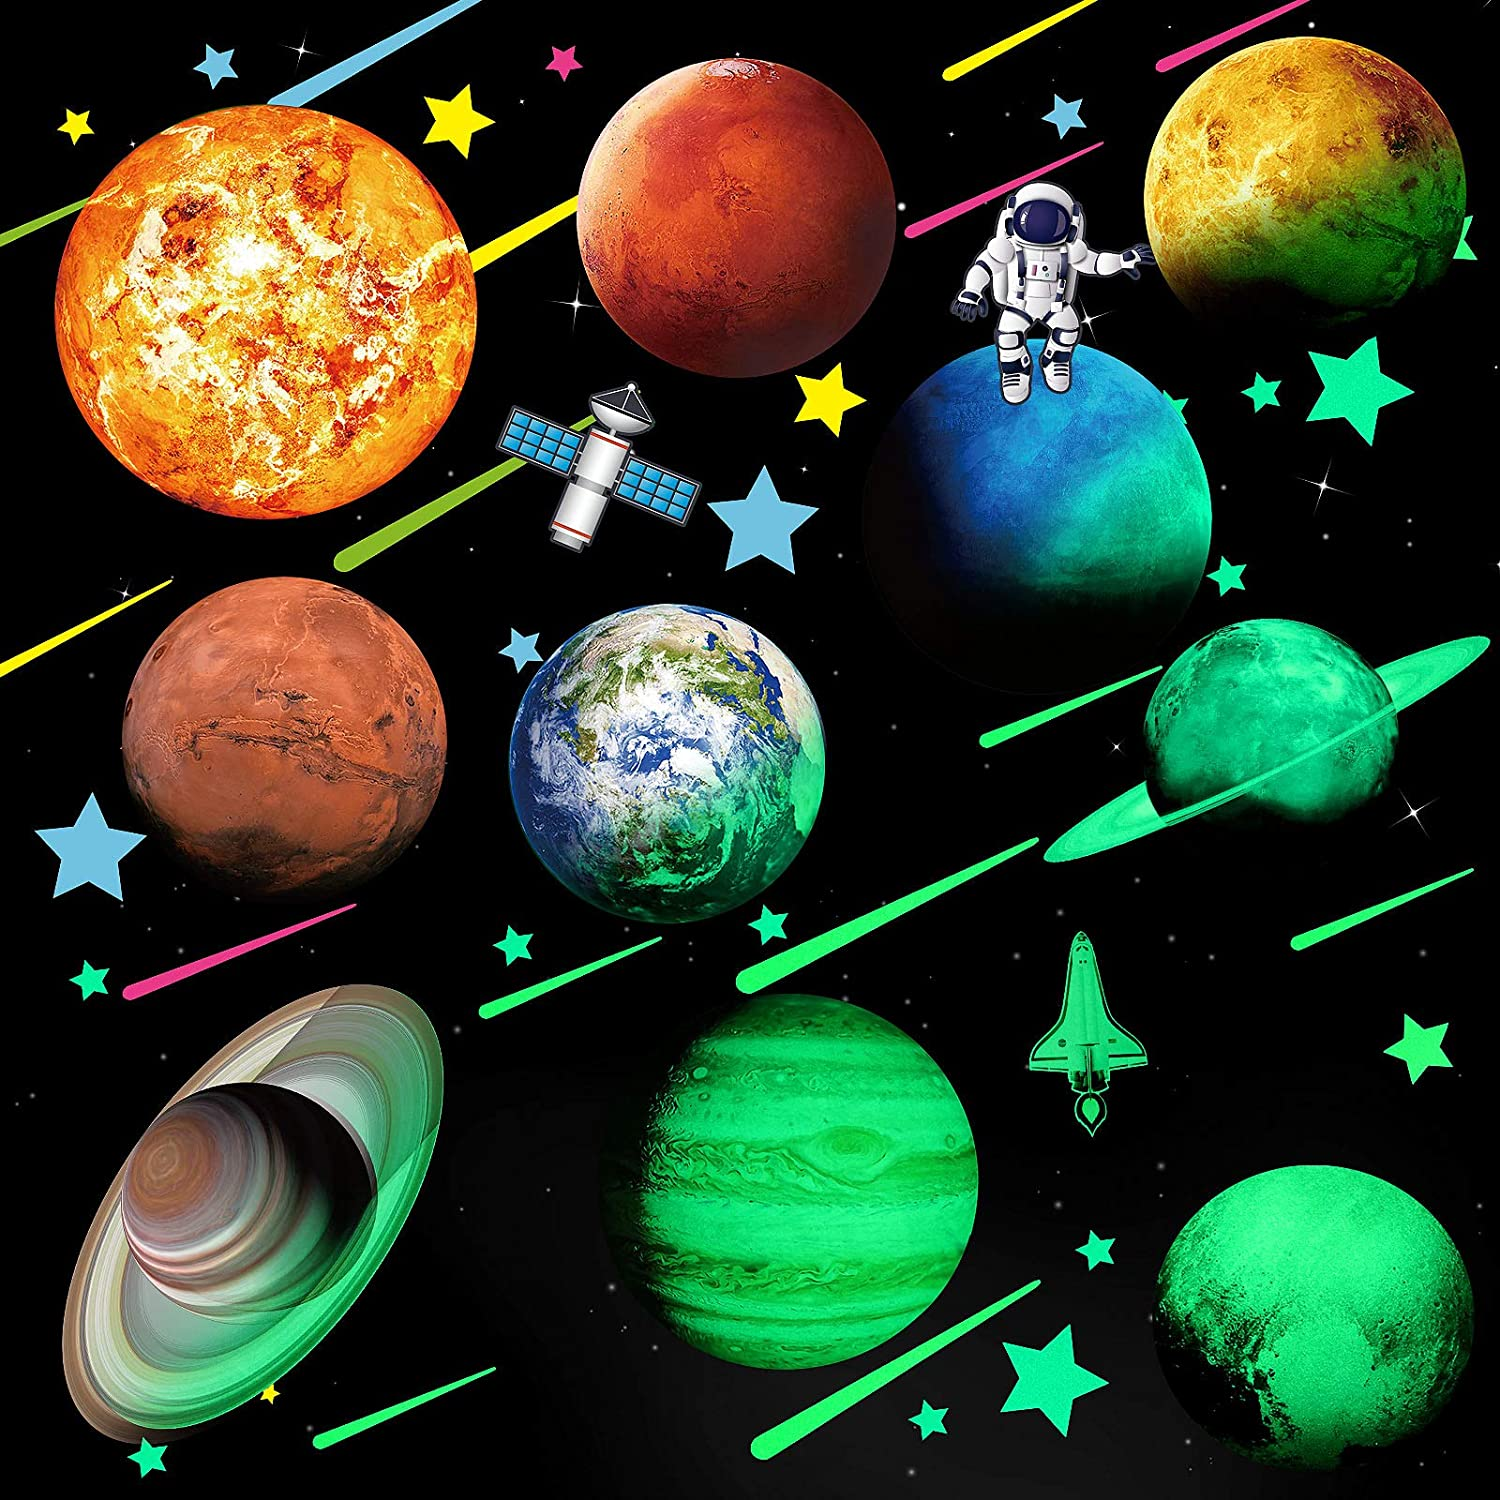 Glowing Stars and Planets, Bright Solar System Wall Stickers, Glow in The Dark Ceiling Decals Eight Planets Neptune Pluto Rocket Astronaut Moon Meteor Star Wall Decals for Bedroom Living Room